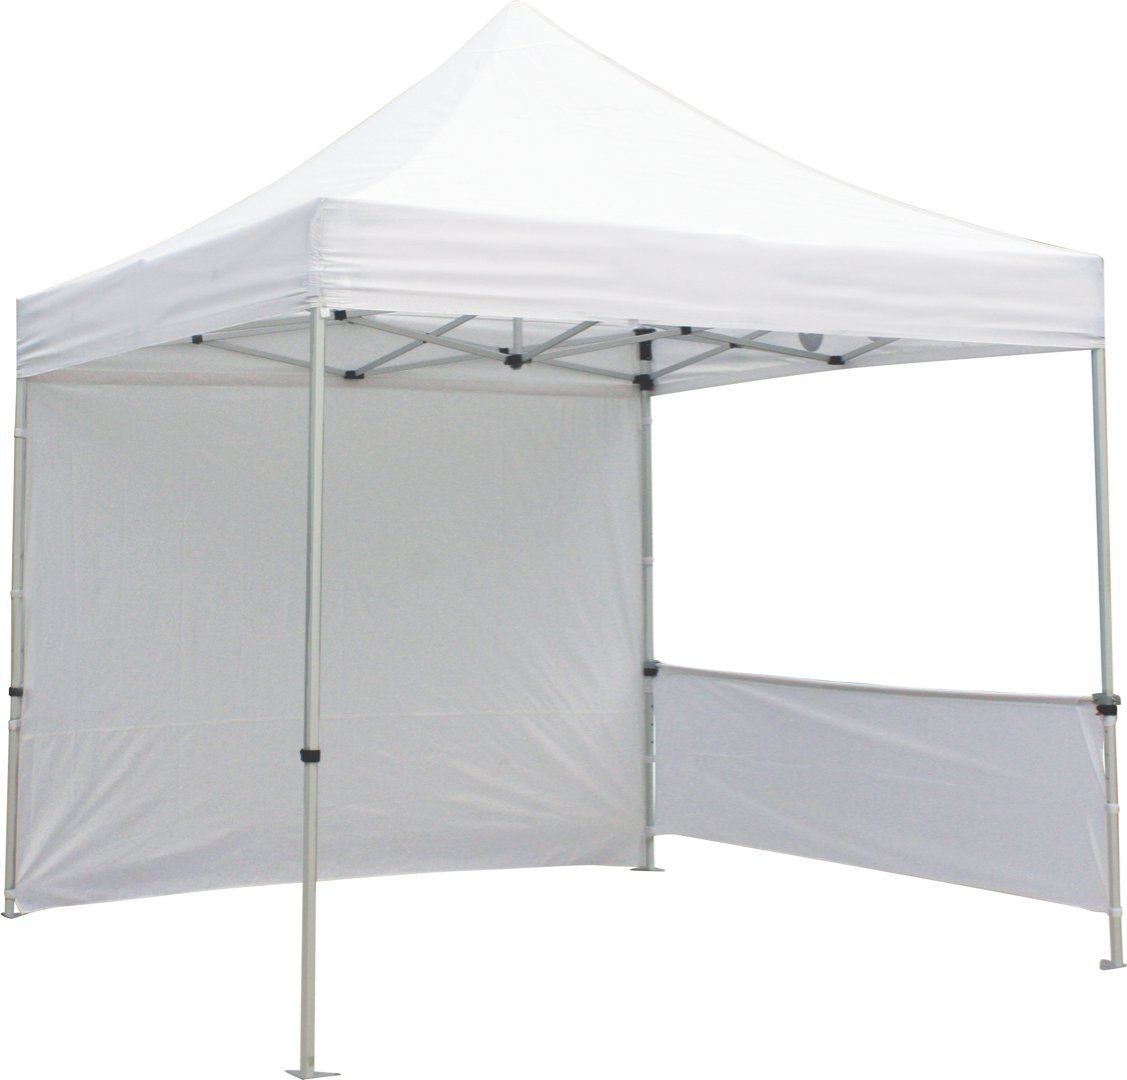 Exhibitor's Handbook TNT-3MX3M-FLL-WLL-WHT Zoom Popup Tent Full Wall Only, 10', White